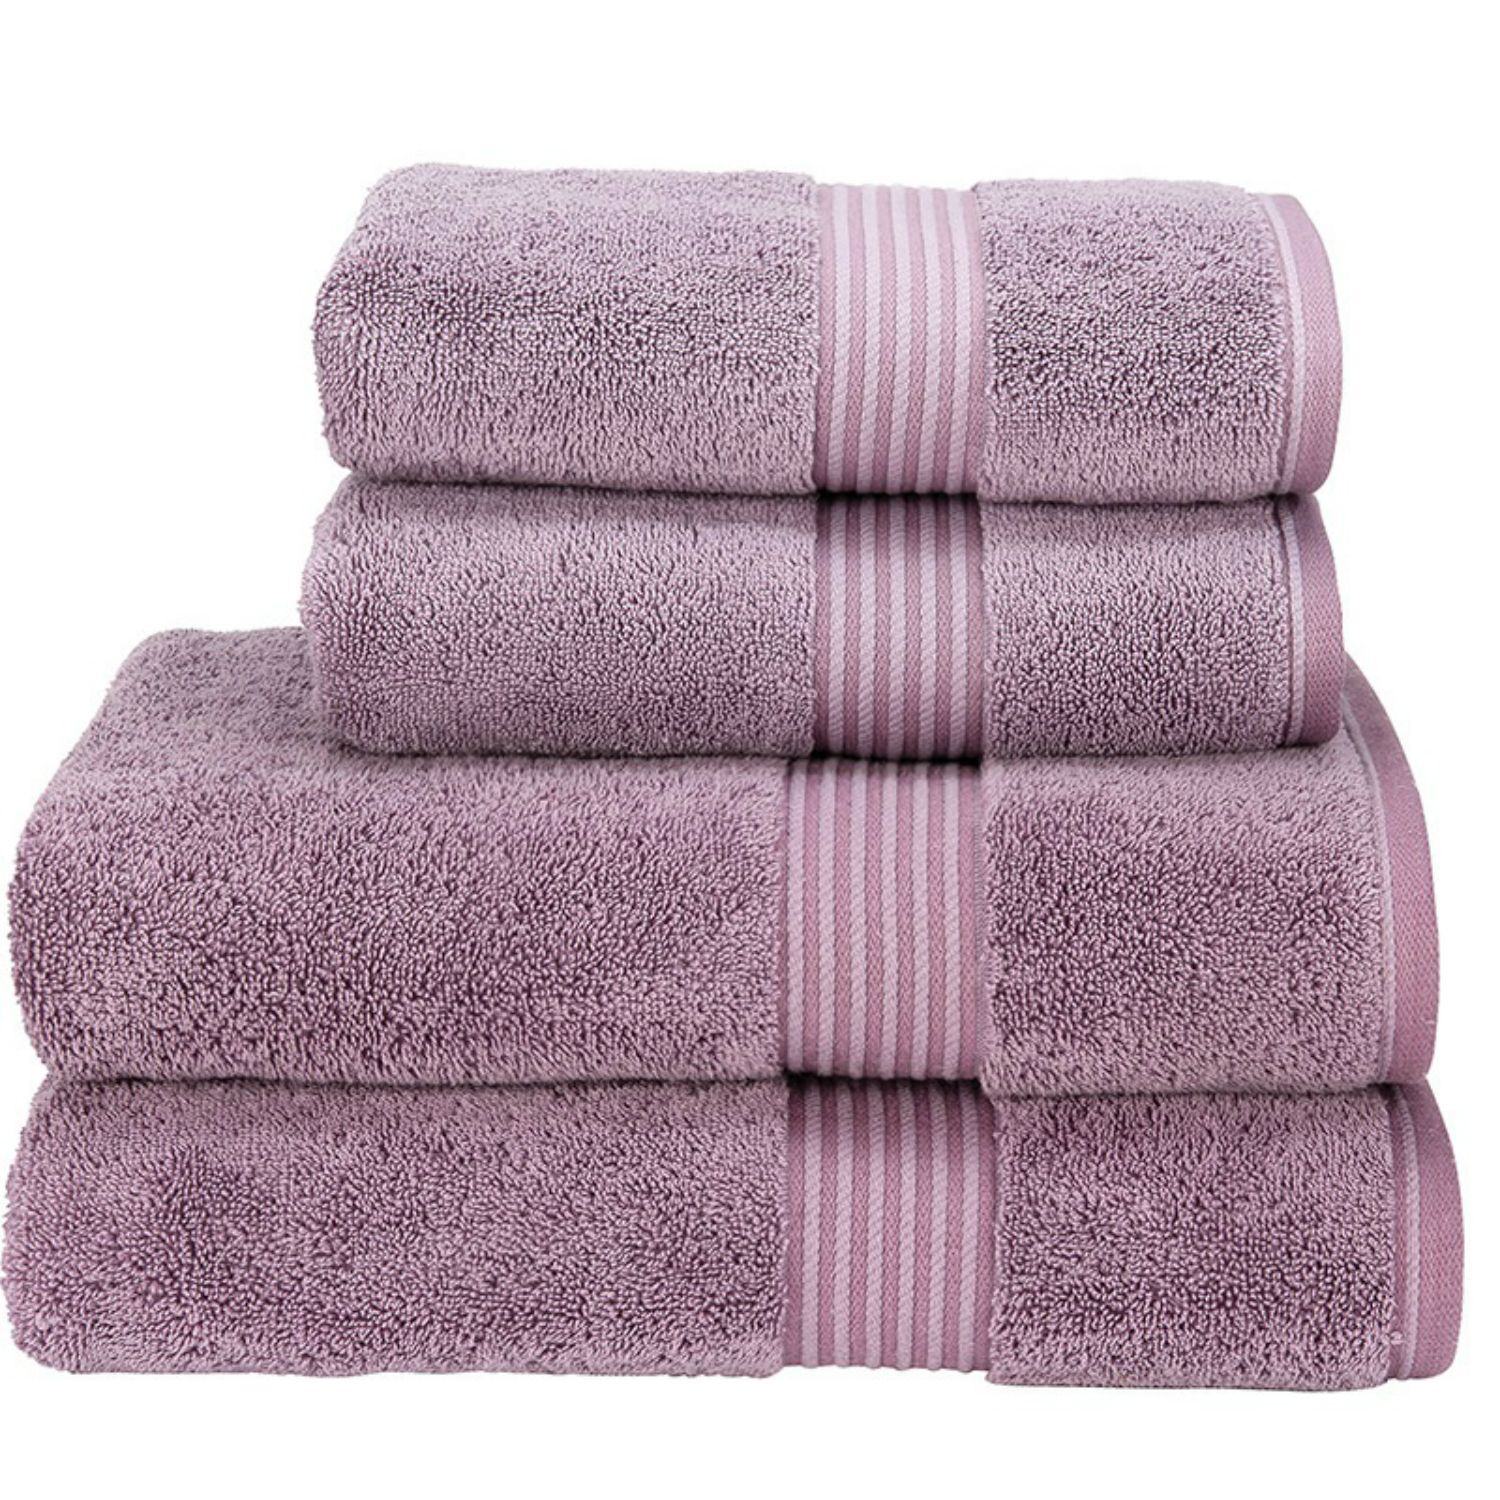 Christy Hotel Towels (Damson)